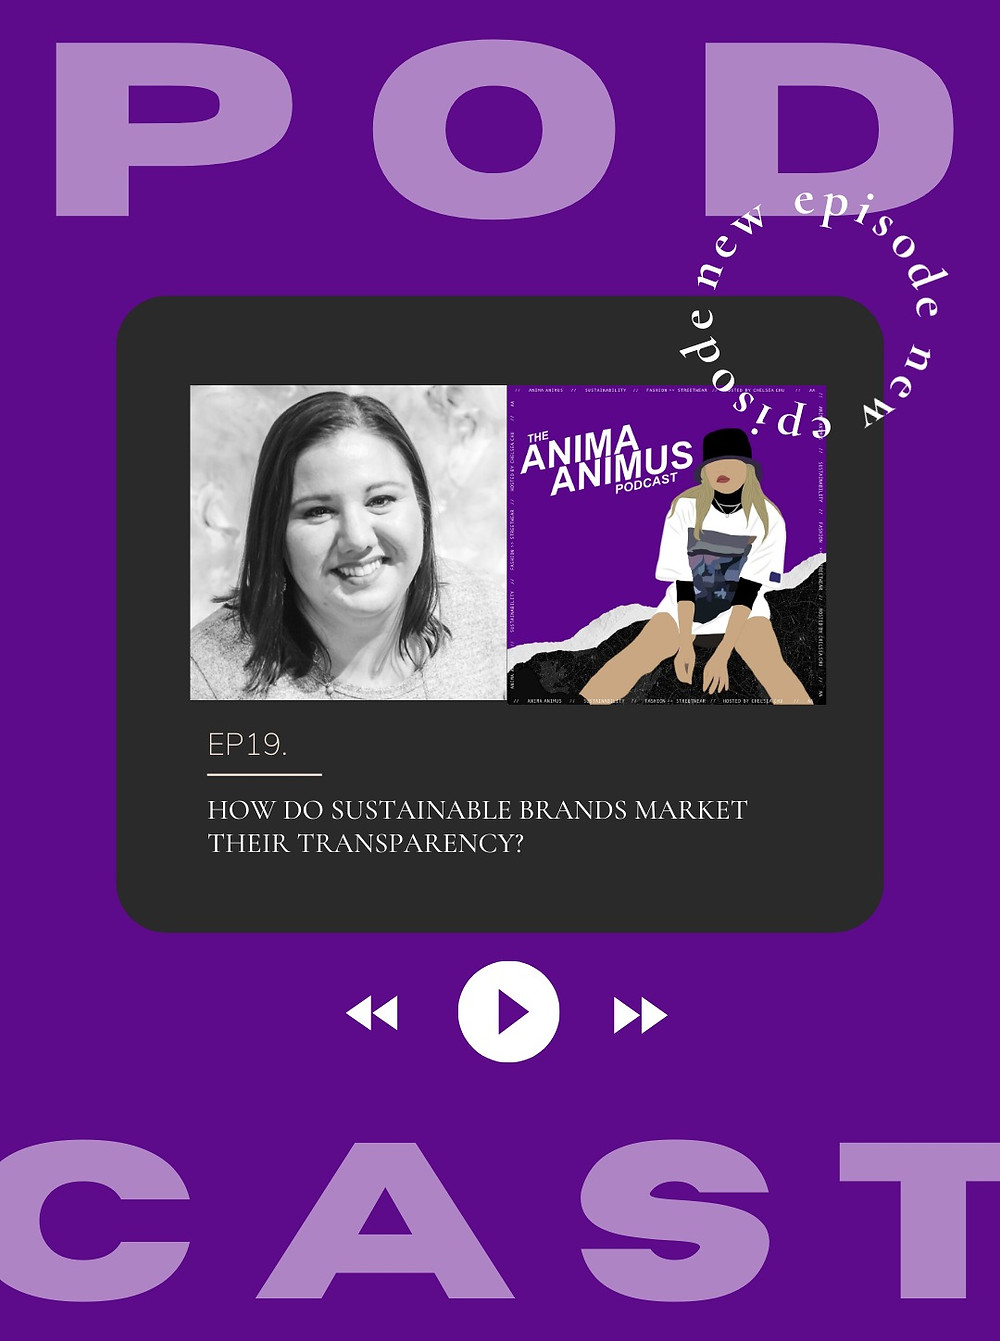 Podcast episode from fashion sustainability and streetwear podcast called The Anima Animus Podcast. This week's guest is Erica Larson from Pixel Power.